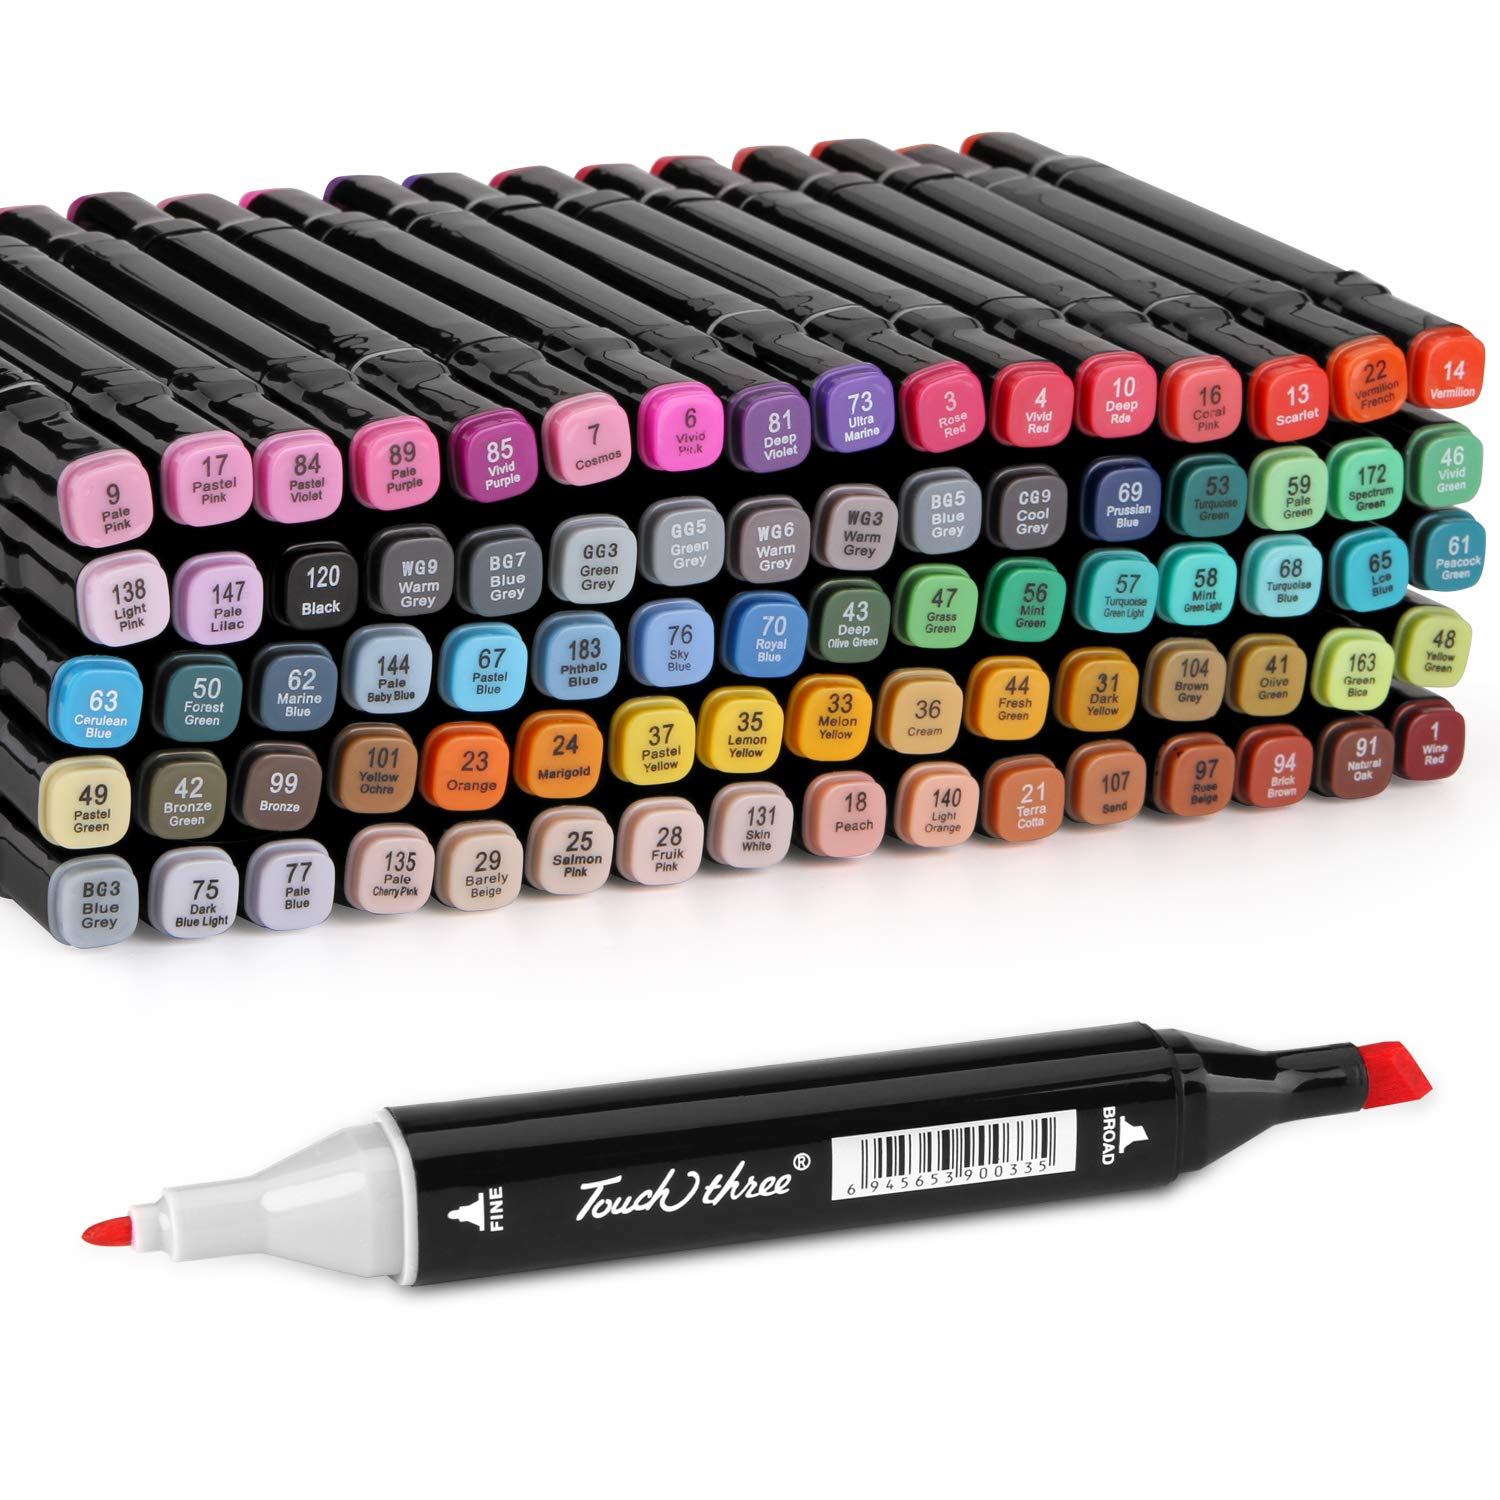 80 Colors Marker Pen Set, AGPtEK Permanent Dual Tips Marker Pens Art Markers with Zipper Carrying Bag, Ideal for Kids Adults Drawing, Sketching, Highlighting & Underlining